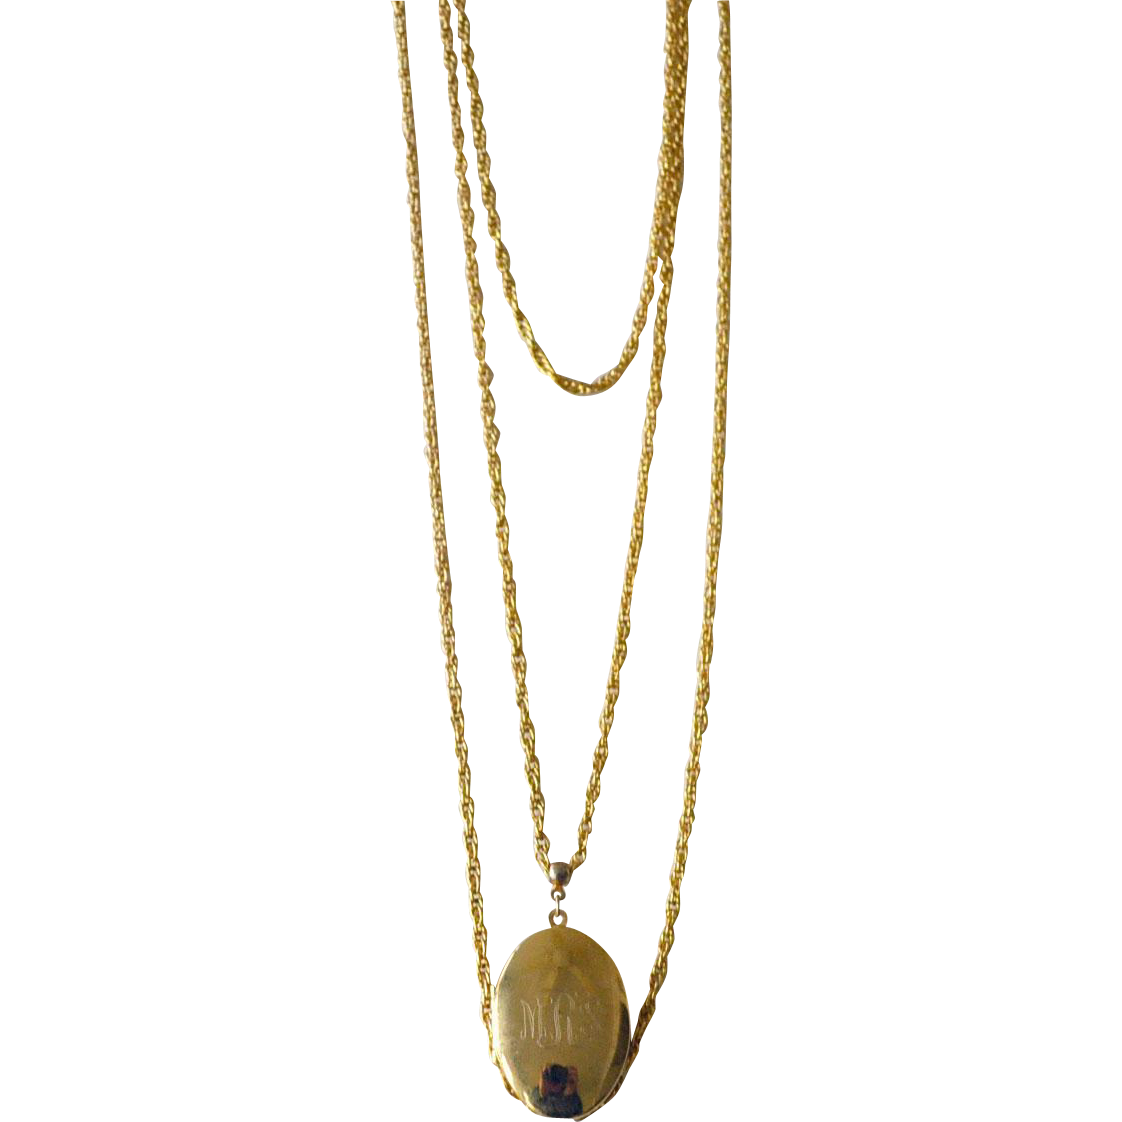 Locket Necklace Three Strands 30 Inches